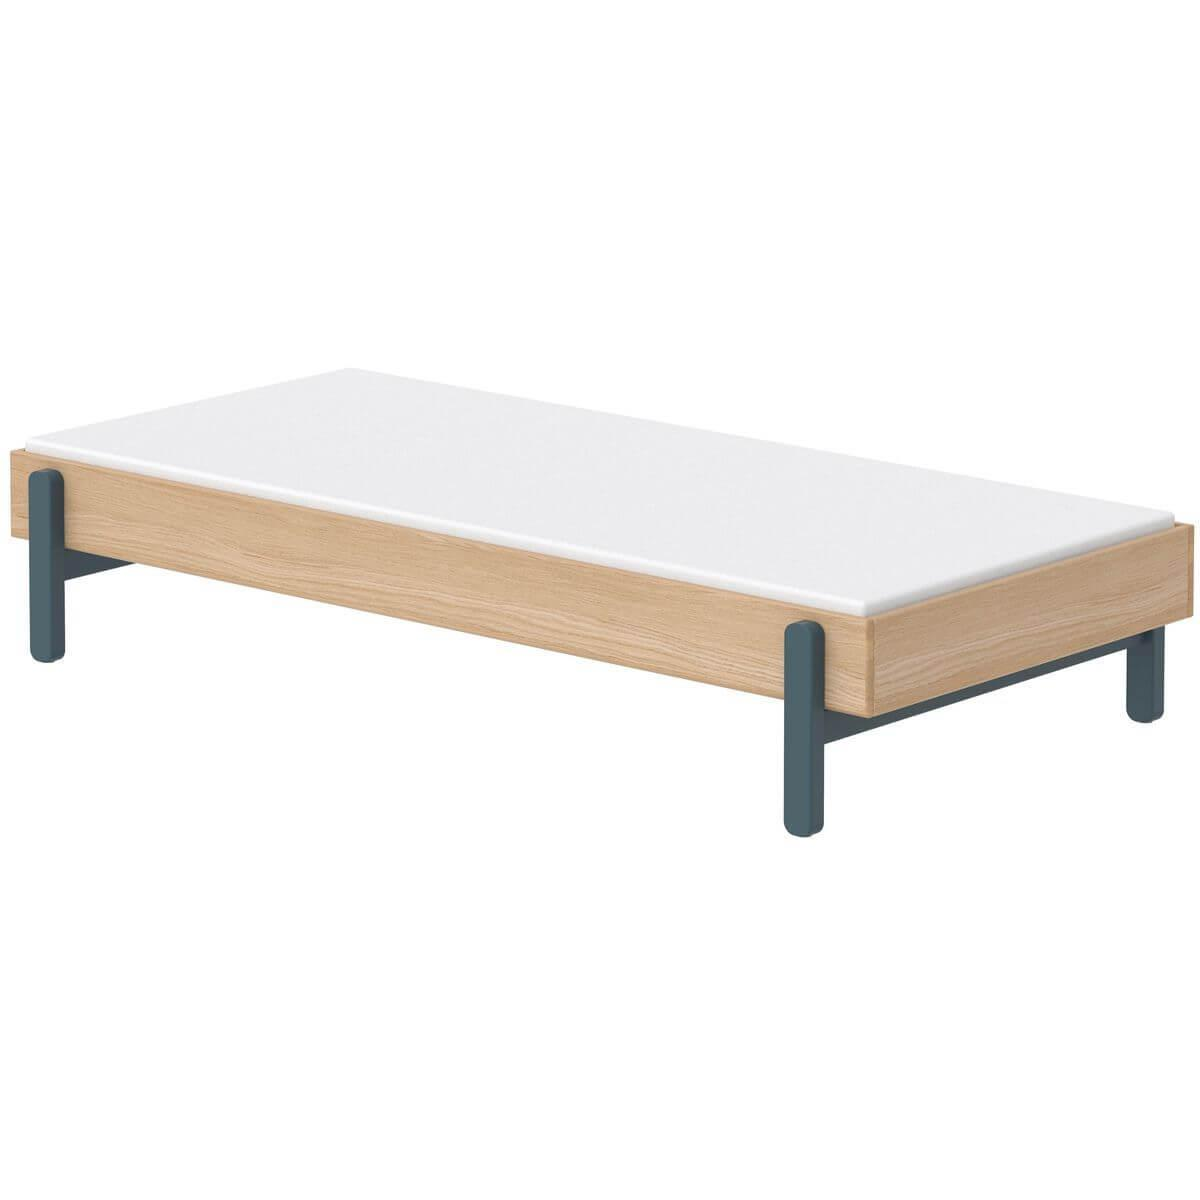 Cama individual 90x200cm POPSICLE Flexa roble-blueberry